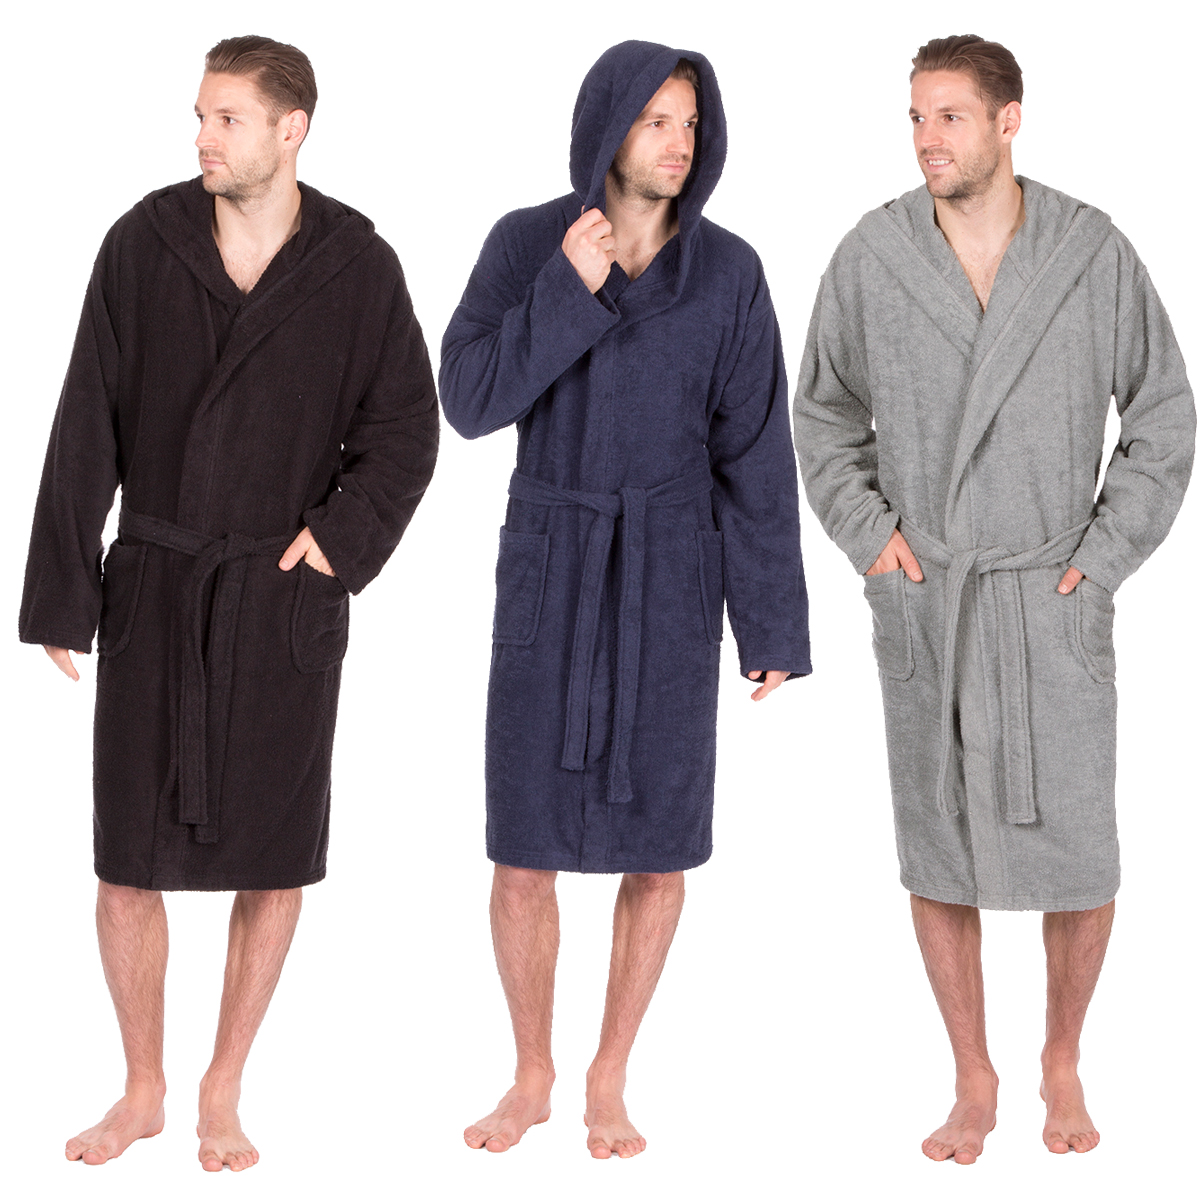 Pierre Roche Mens Terry Cloth Towelling Bath Robe With Hood Cotton ...